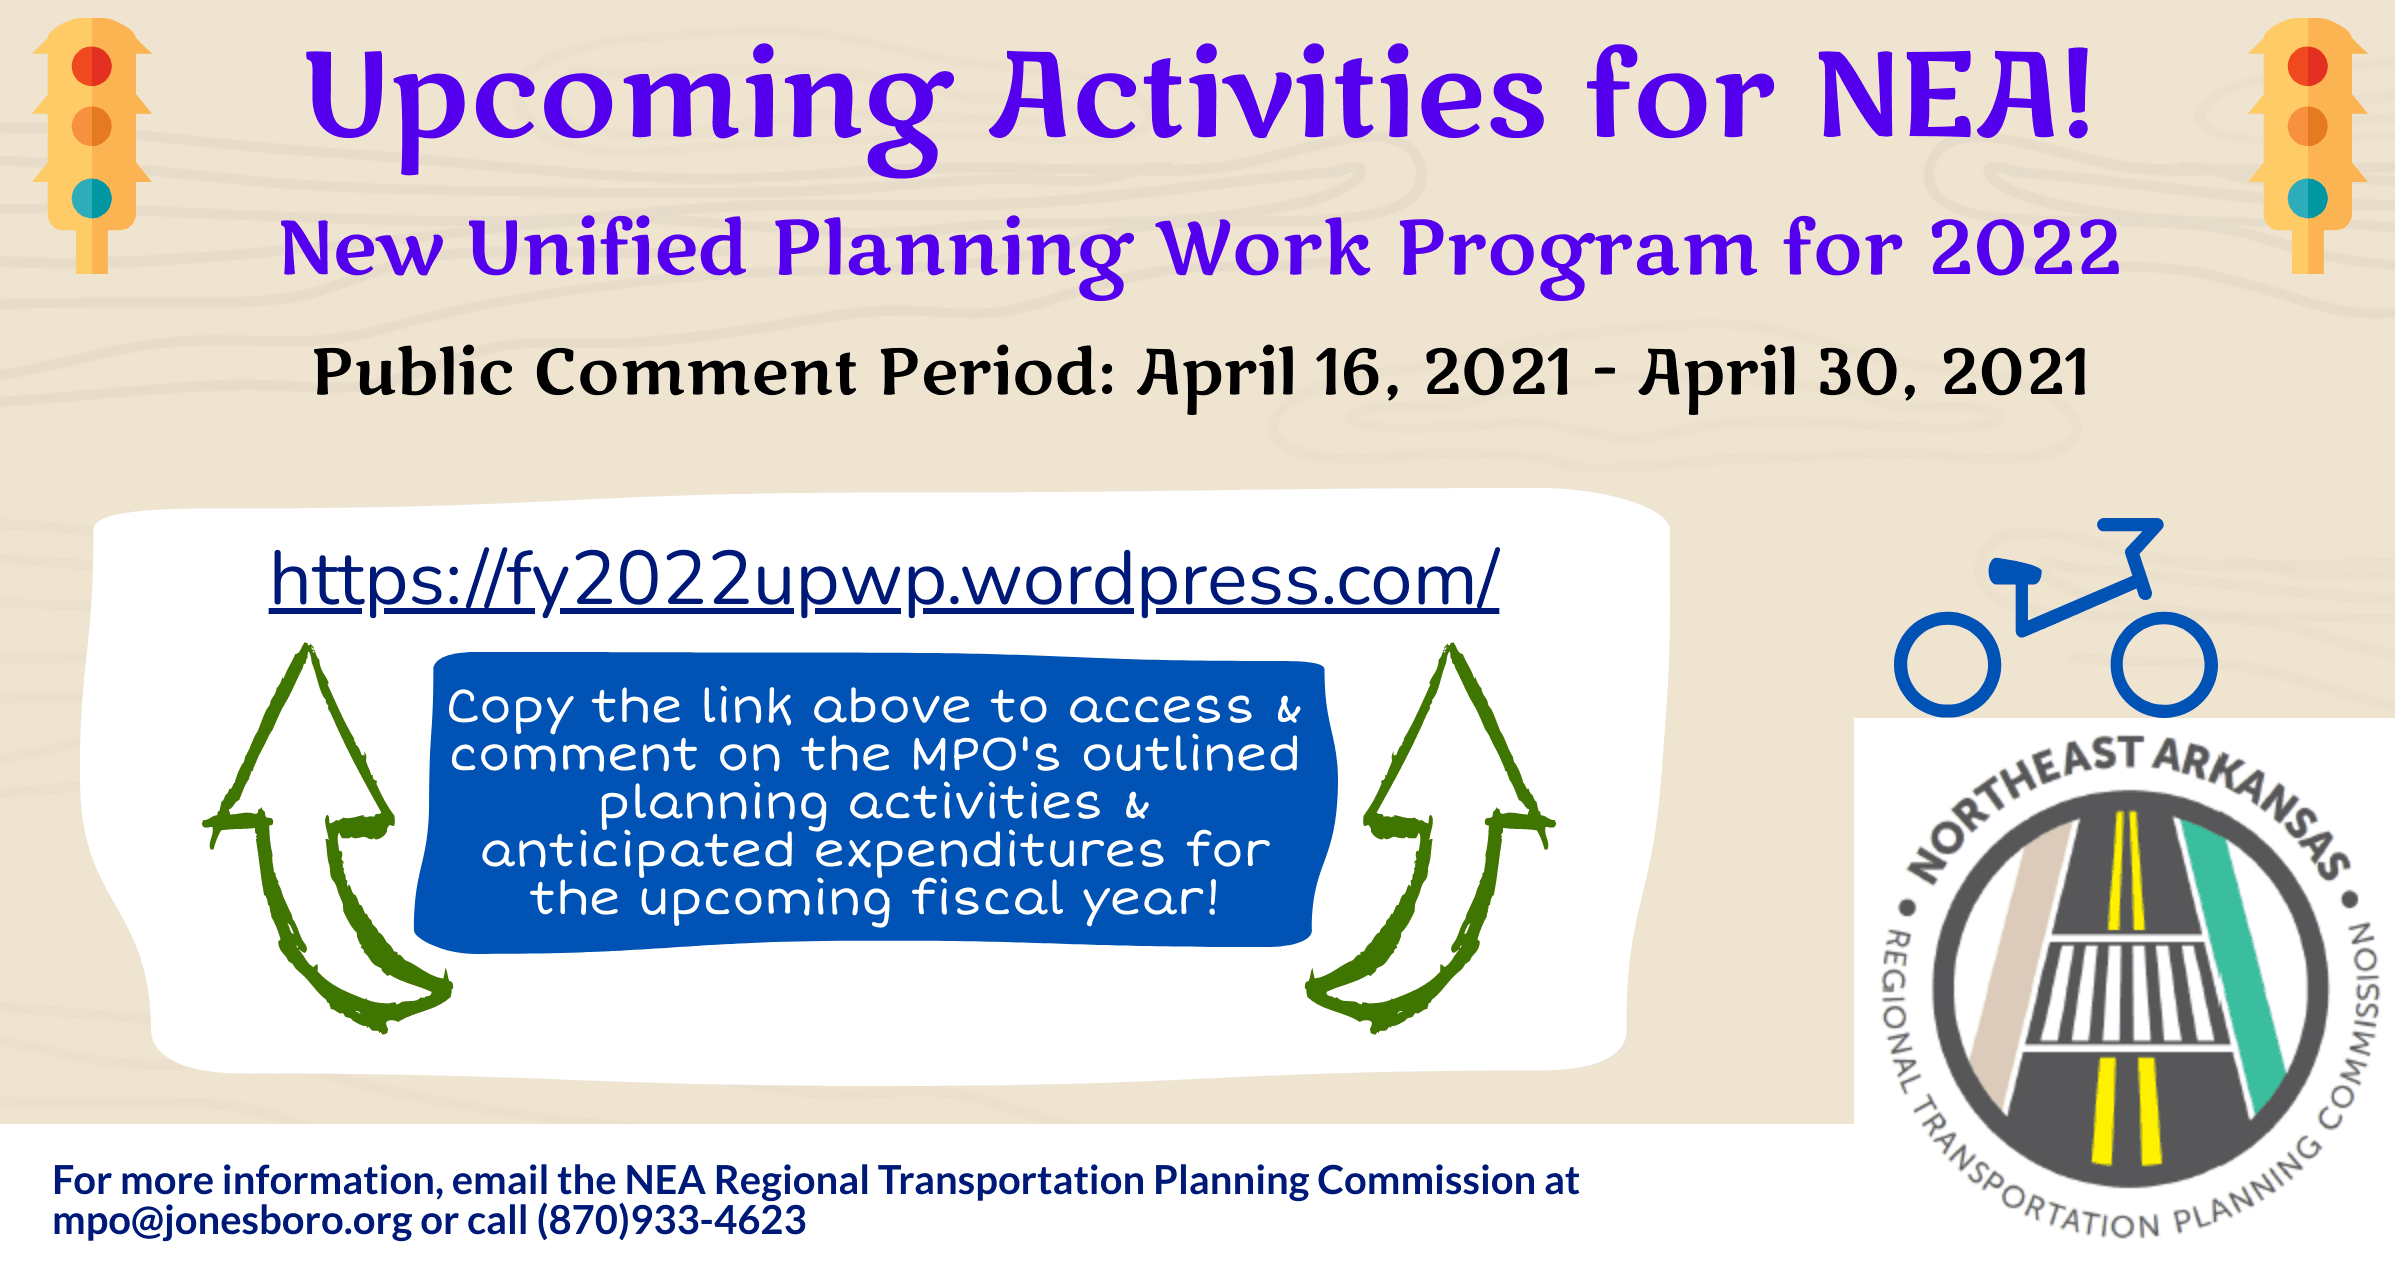 Promotional Flyer for 2022 Unified Planning Work Program website Opens in new window